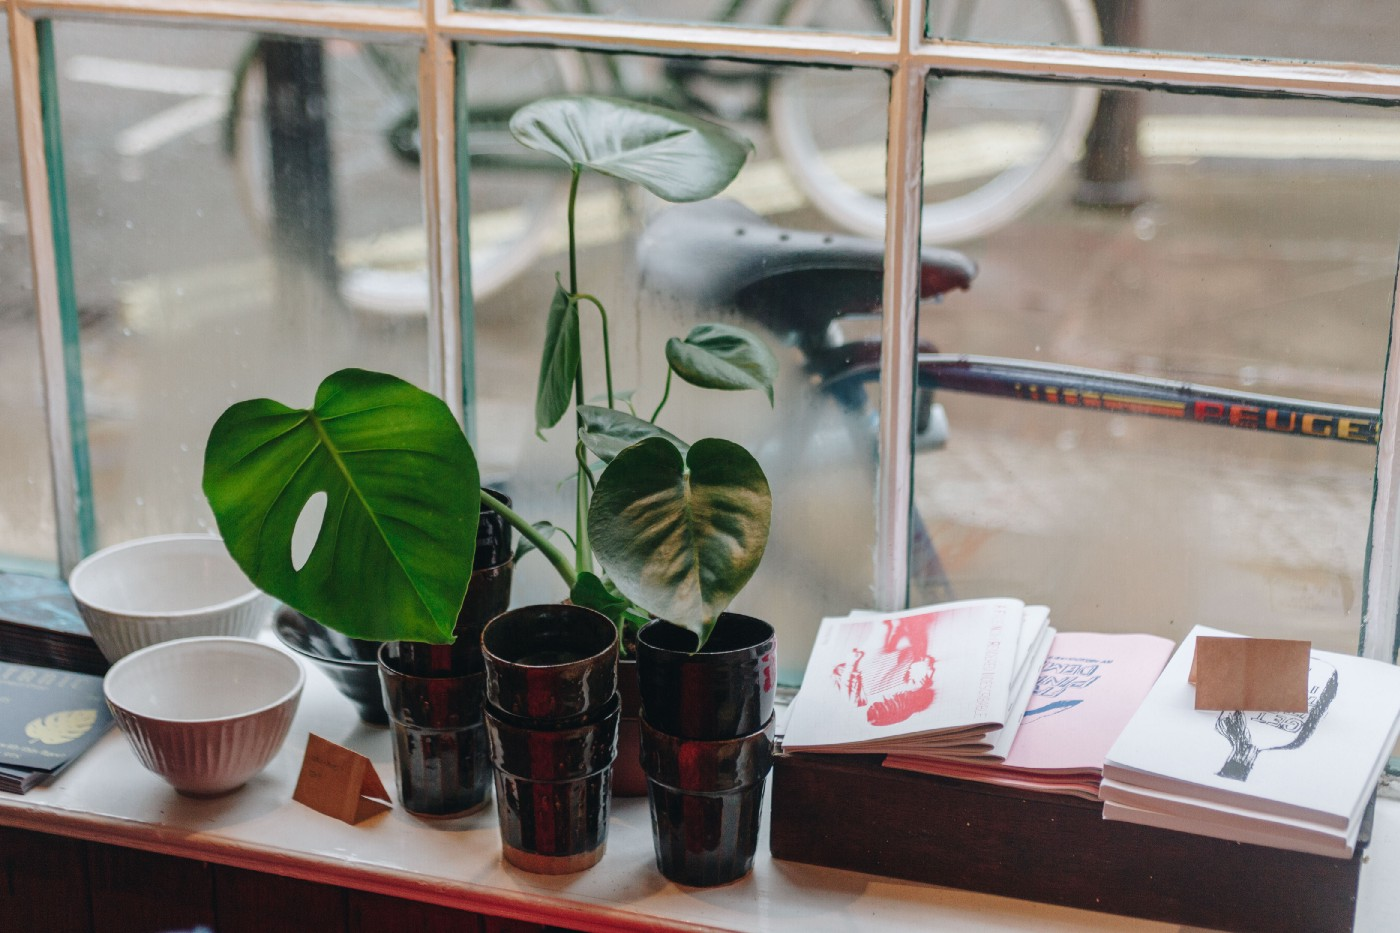 Image of plant growing in a window